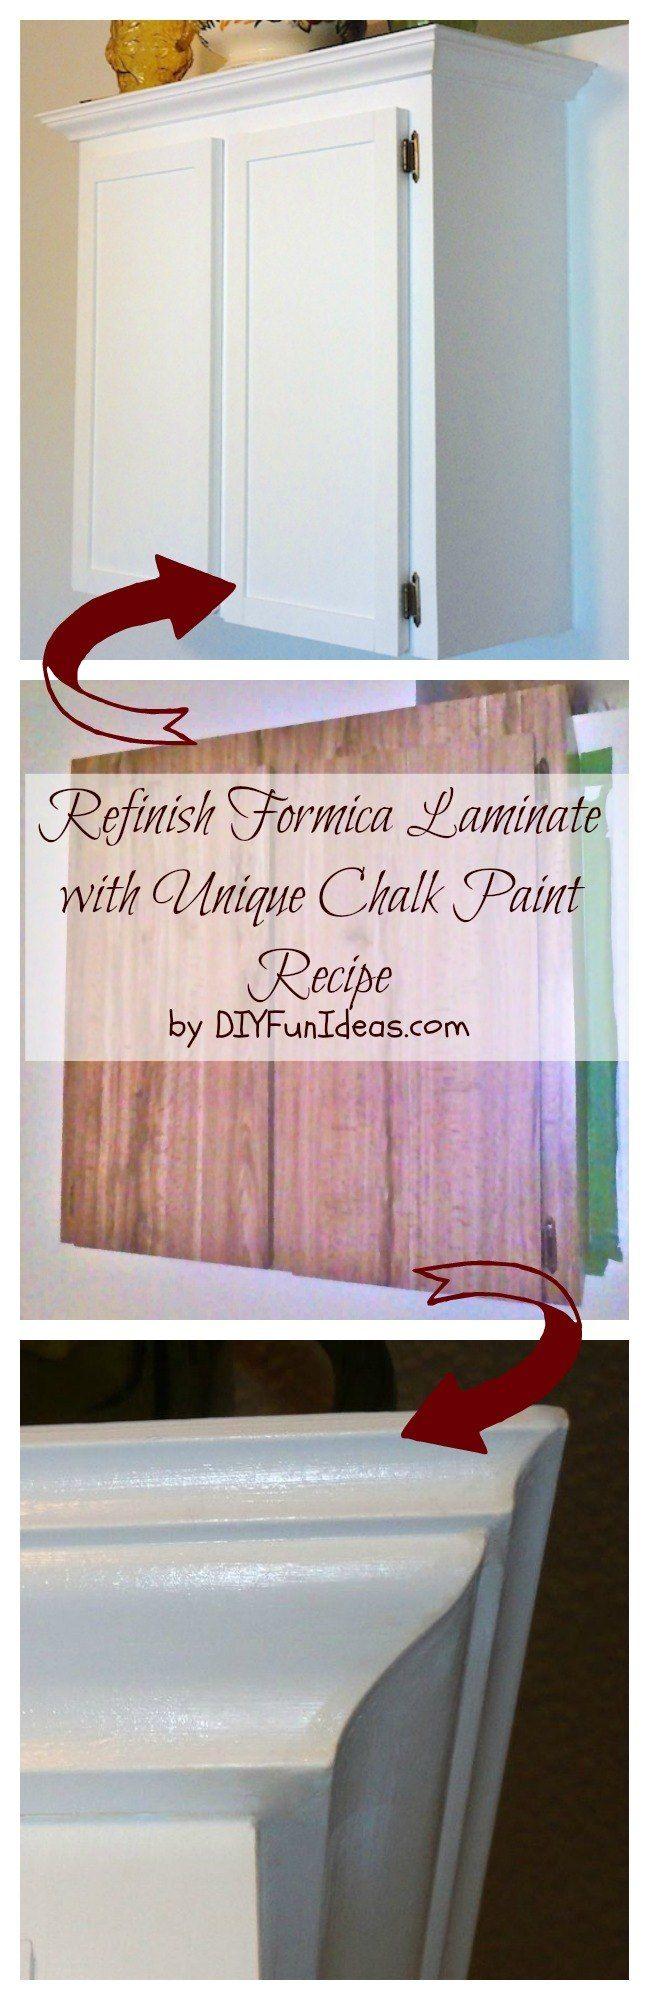 How To Refinish Formica Cabinets Unique Chalk Paint Recipe Do It Yourself Fun Ideas Formica Cabinets Chalk Paint Recipe Home Diy